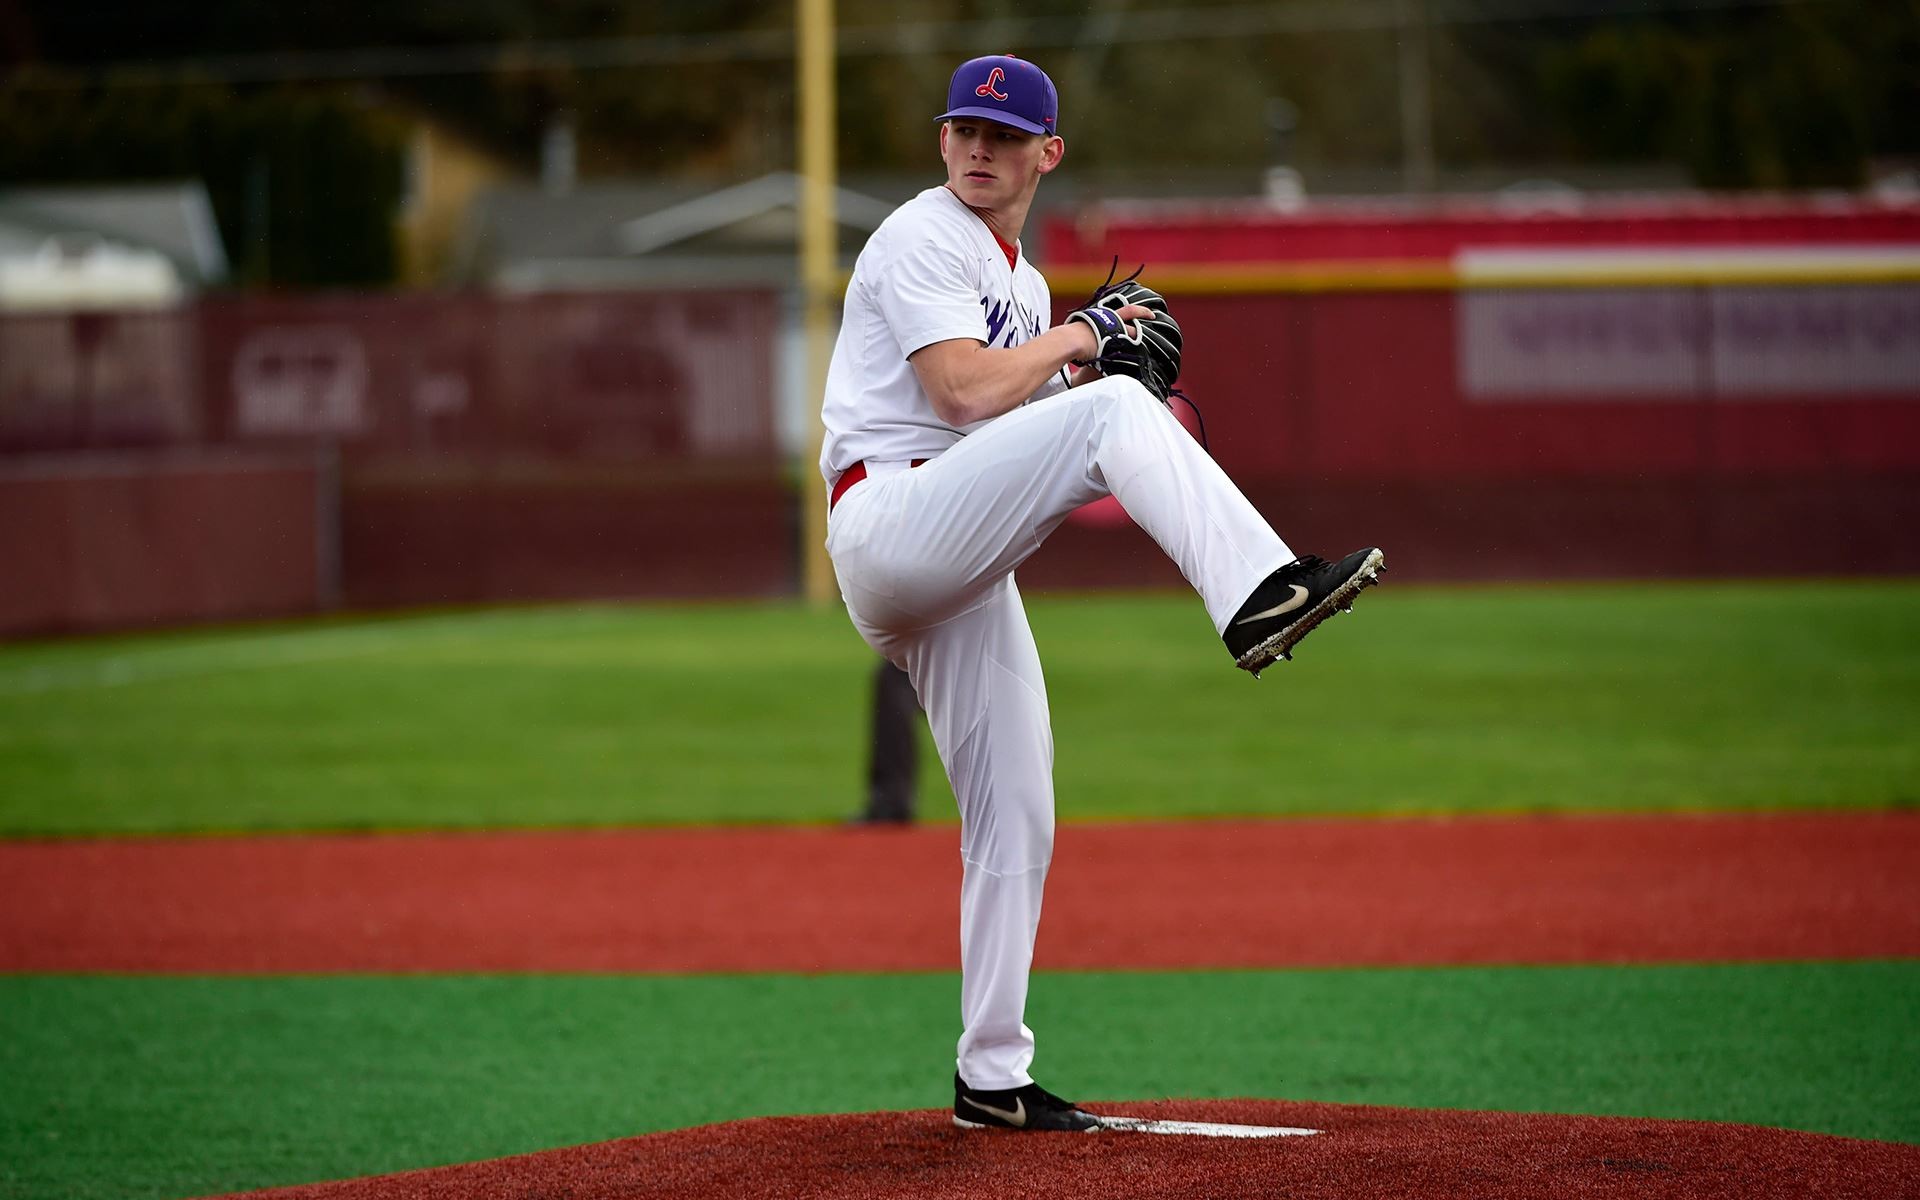 Colton pitching in a game against PLU